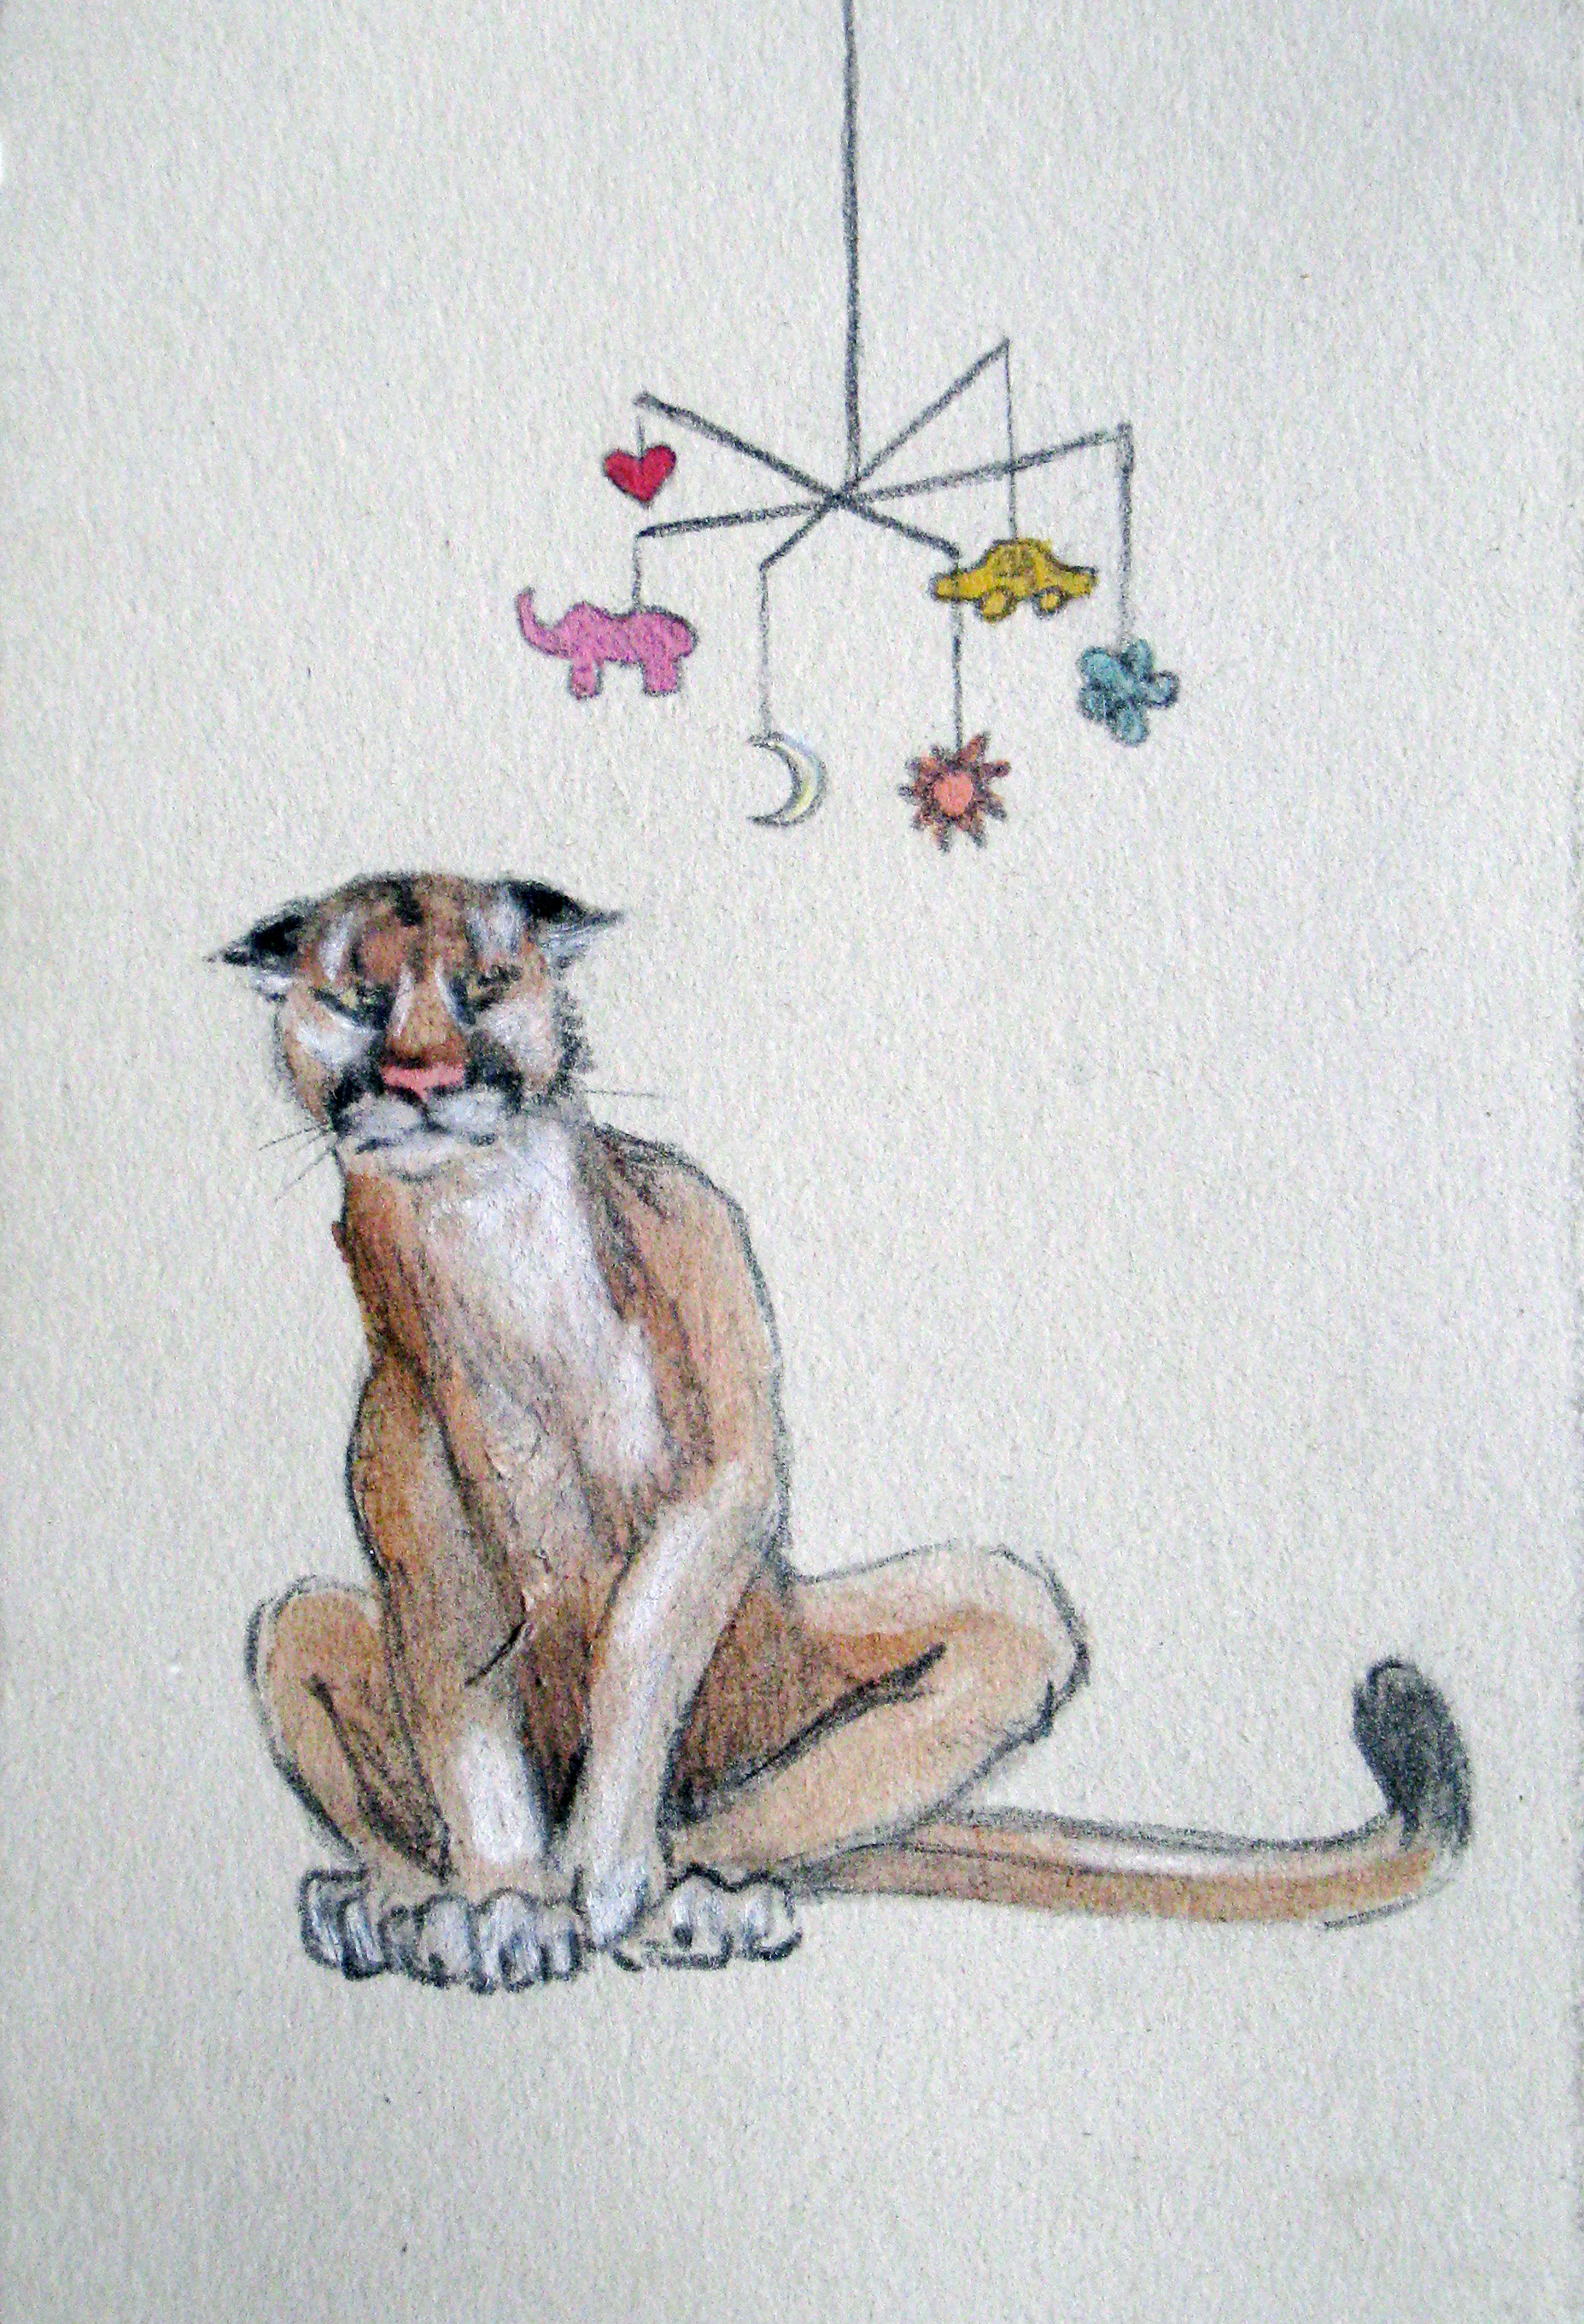 """Cougar 5,, 2007  Charcoal and ink on paper  6x8"""""""